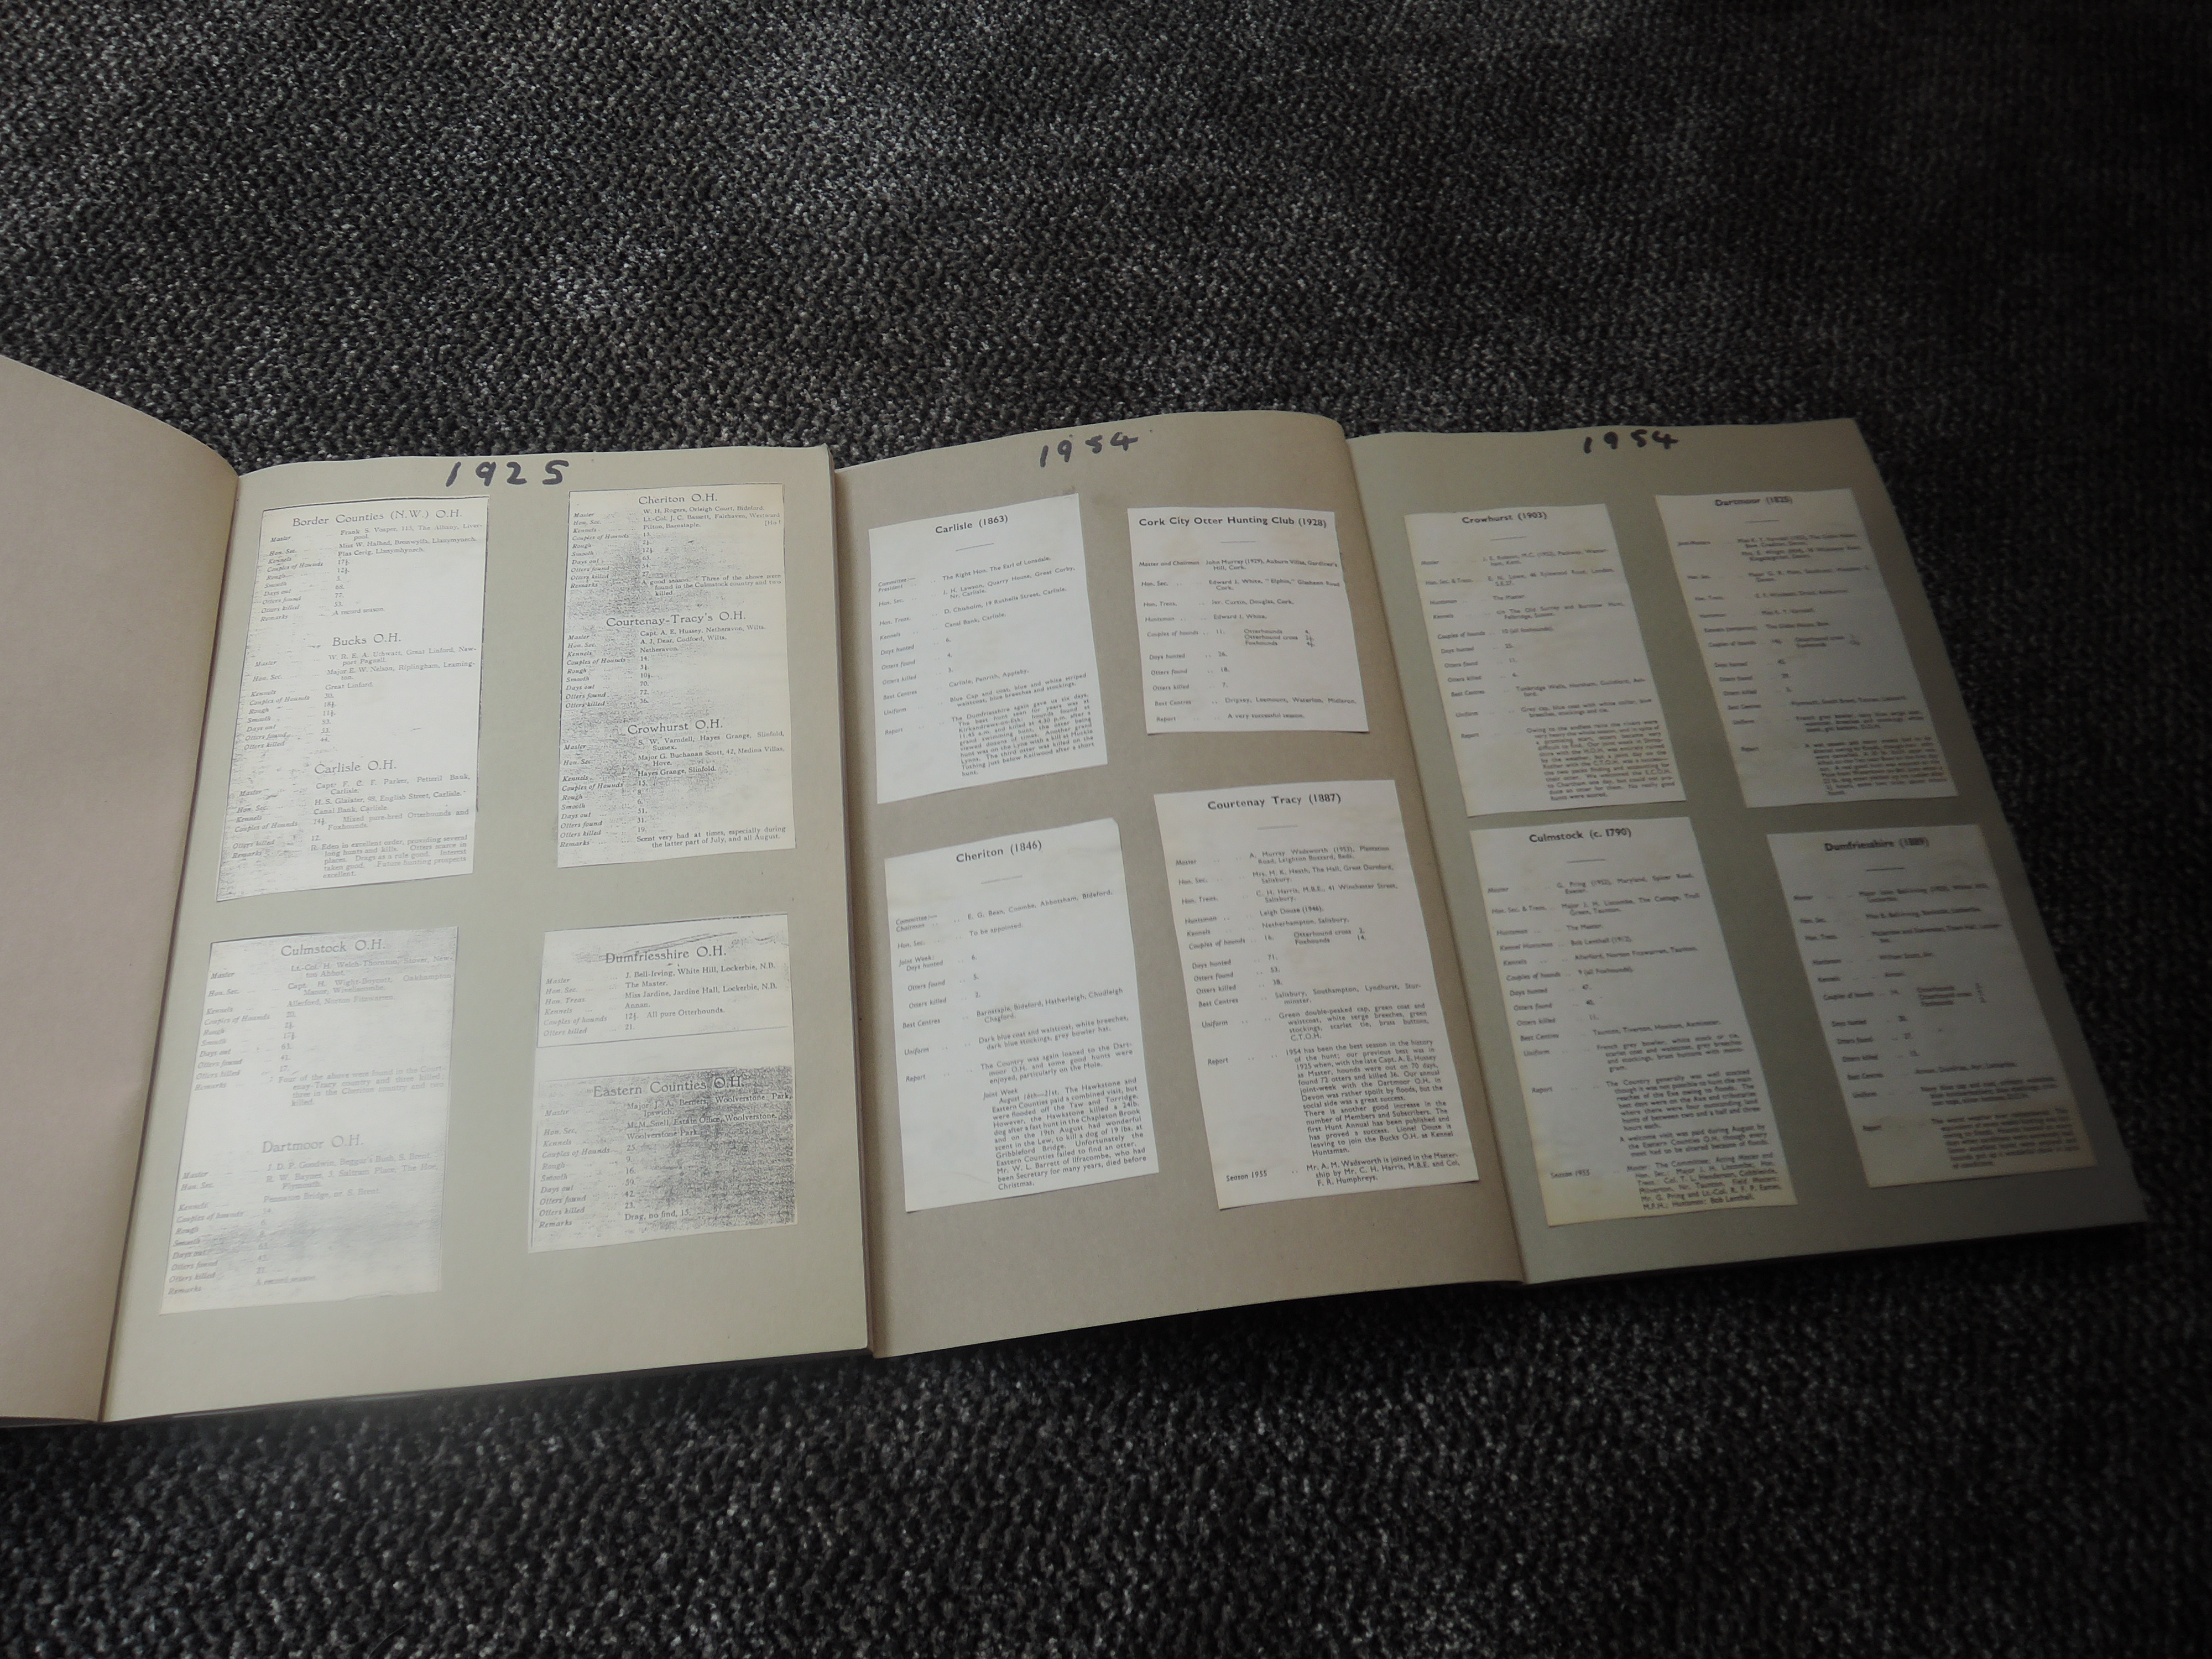 Otter Hunting and related. A large selection, condition mixed. Includes specific Hunt records, - Image 5 of 8